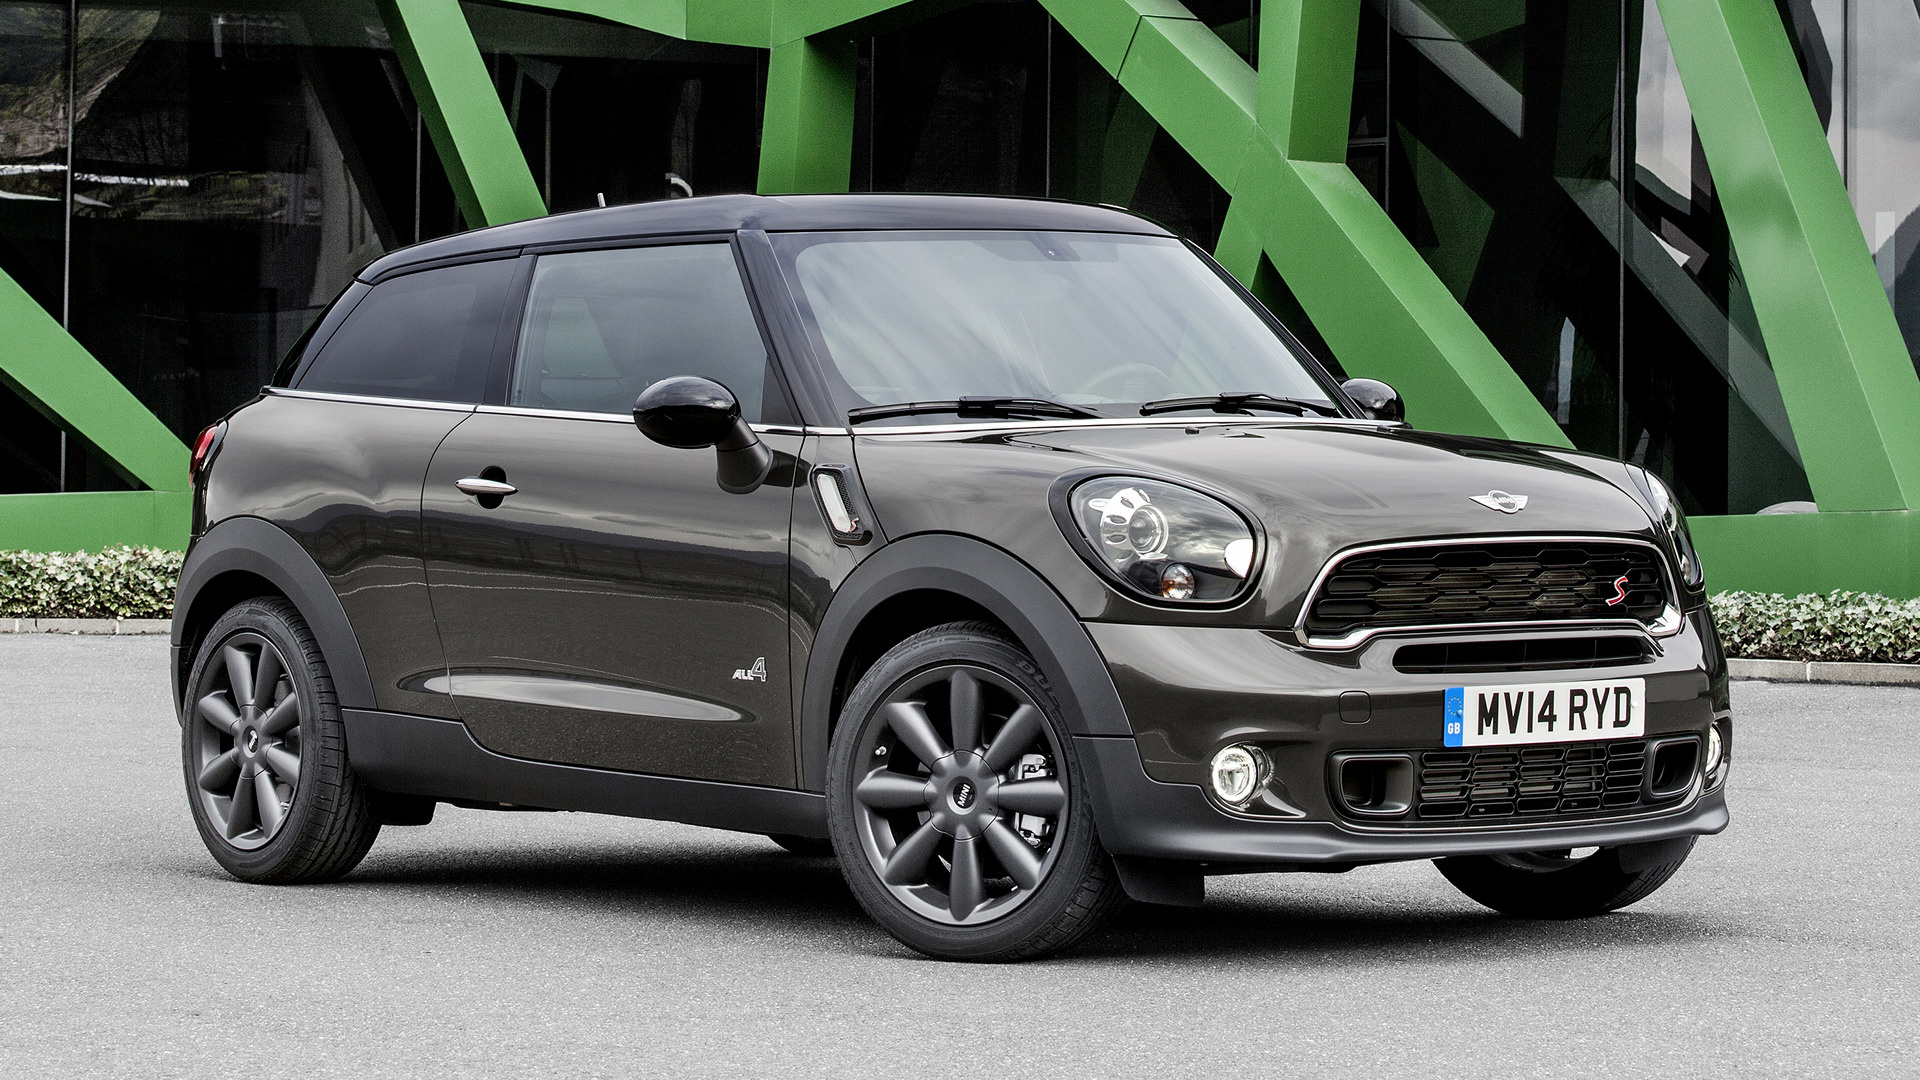 mini cooper s paceman 2014 wallpapers and hd images car pixel. Black Bedroom Furniture Sets. Home Design Ideas